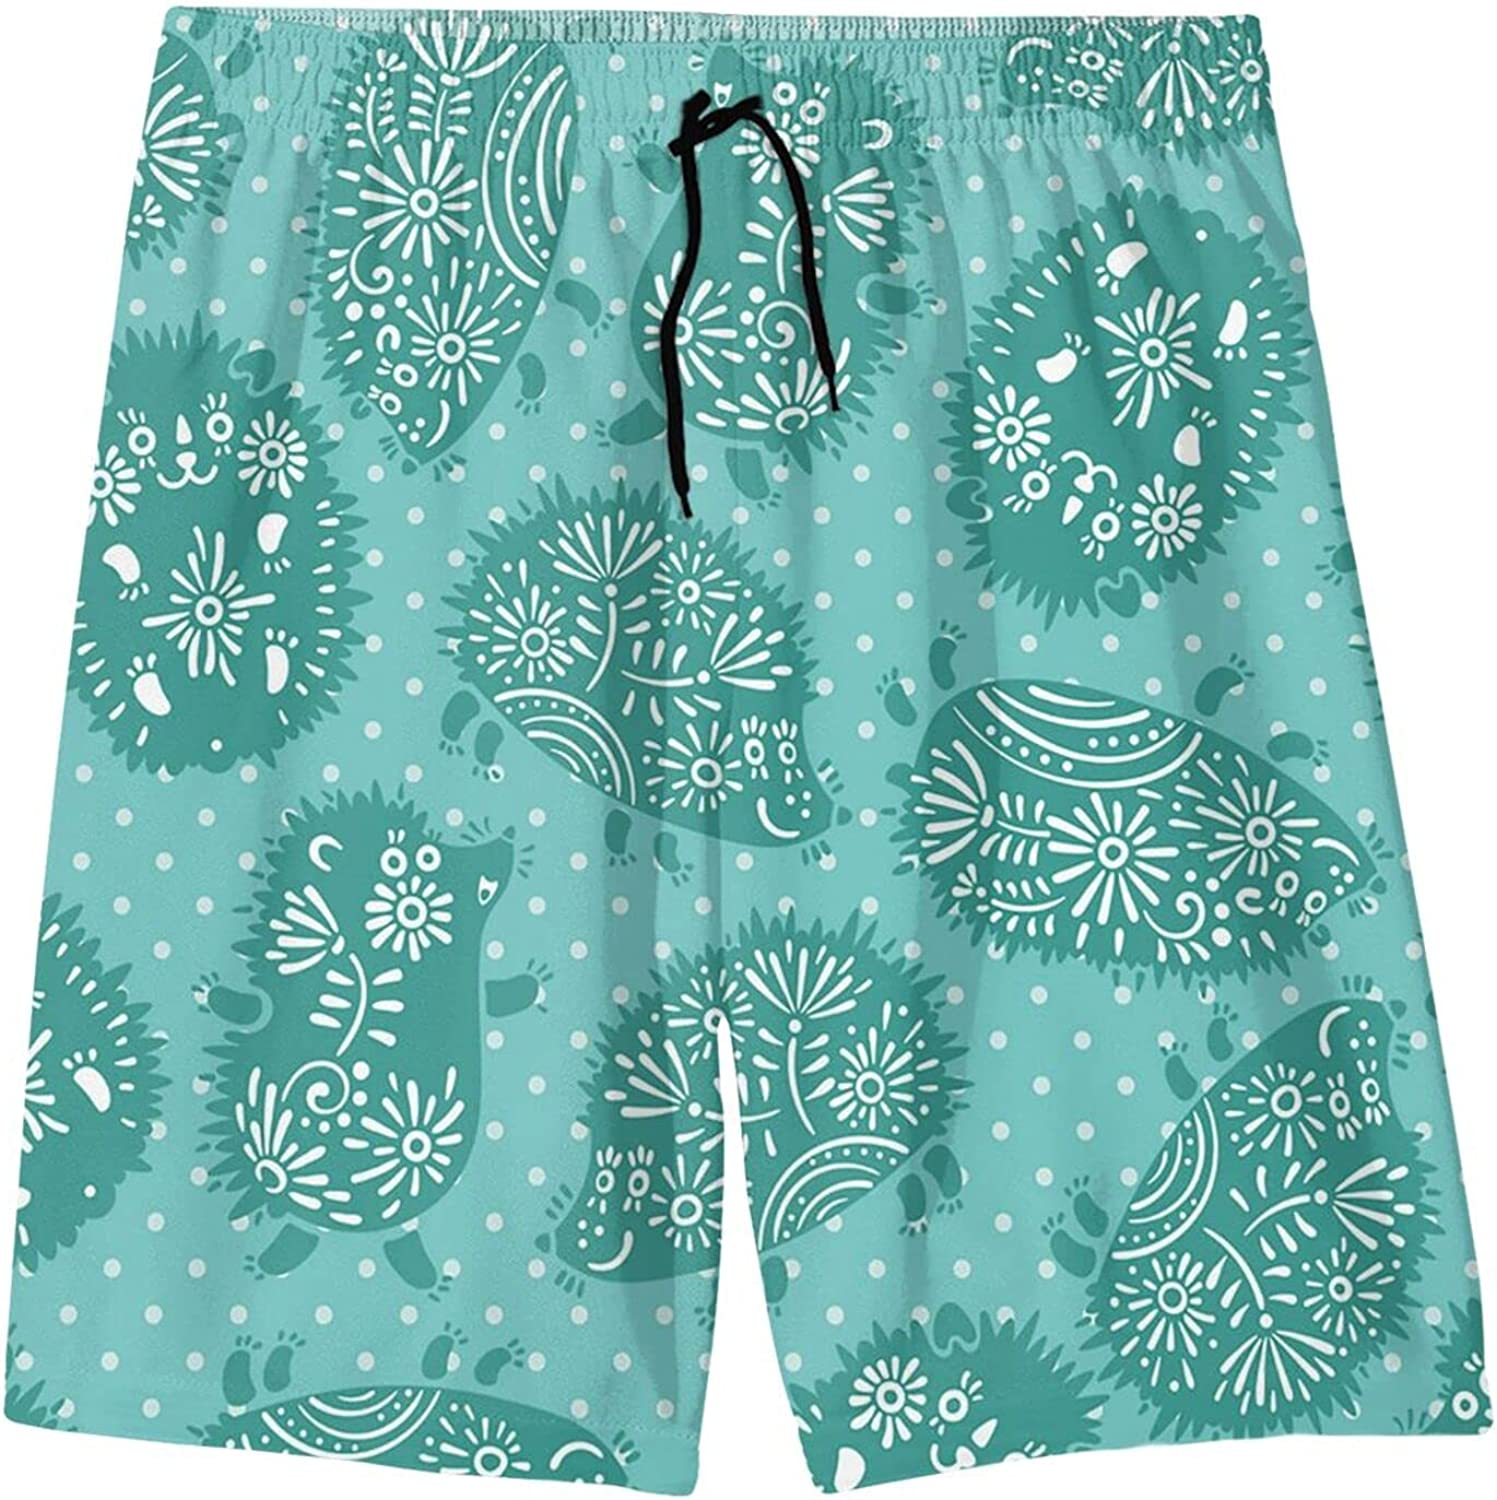 TZT Cute Chicken and Egg Youth Beach Pants Quick-Drying Breathable Loose and Comfortable